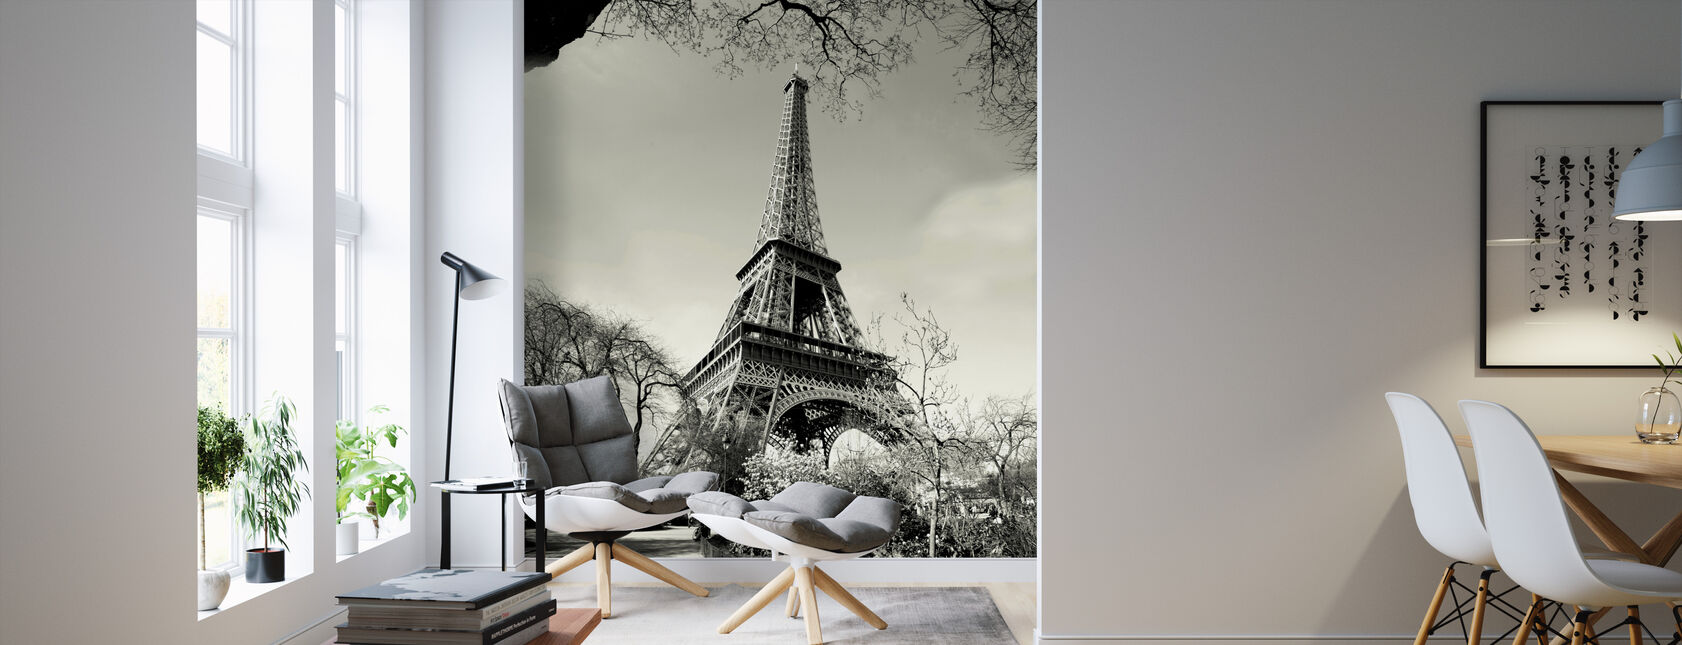 Eiffel Tower - Wallpaper - Living Room